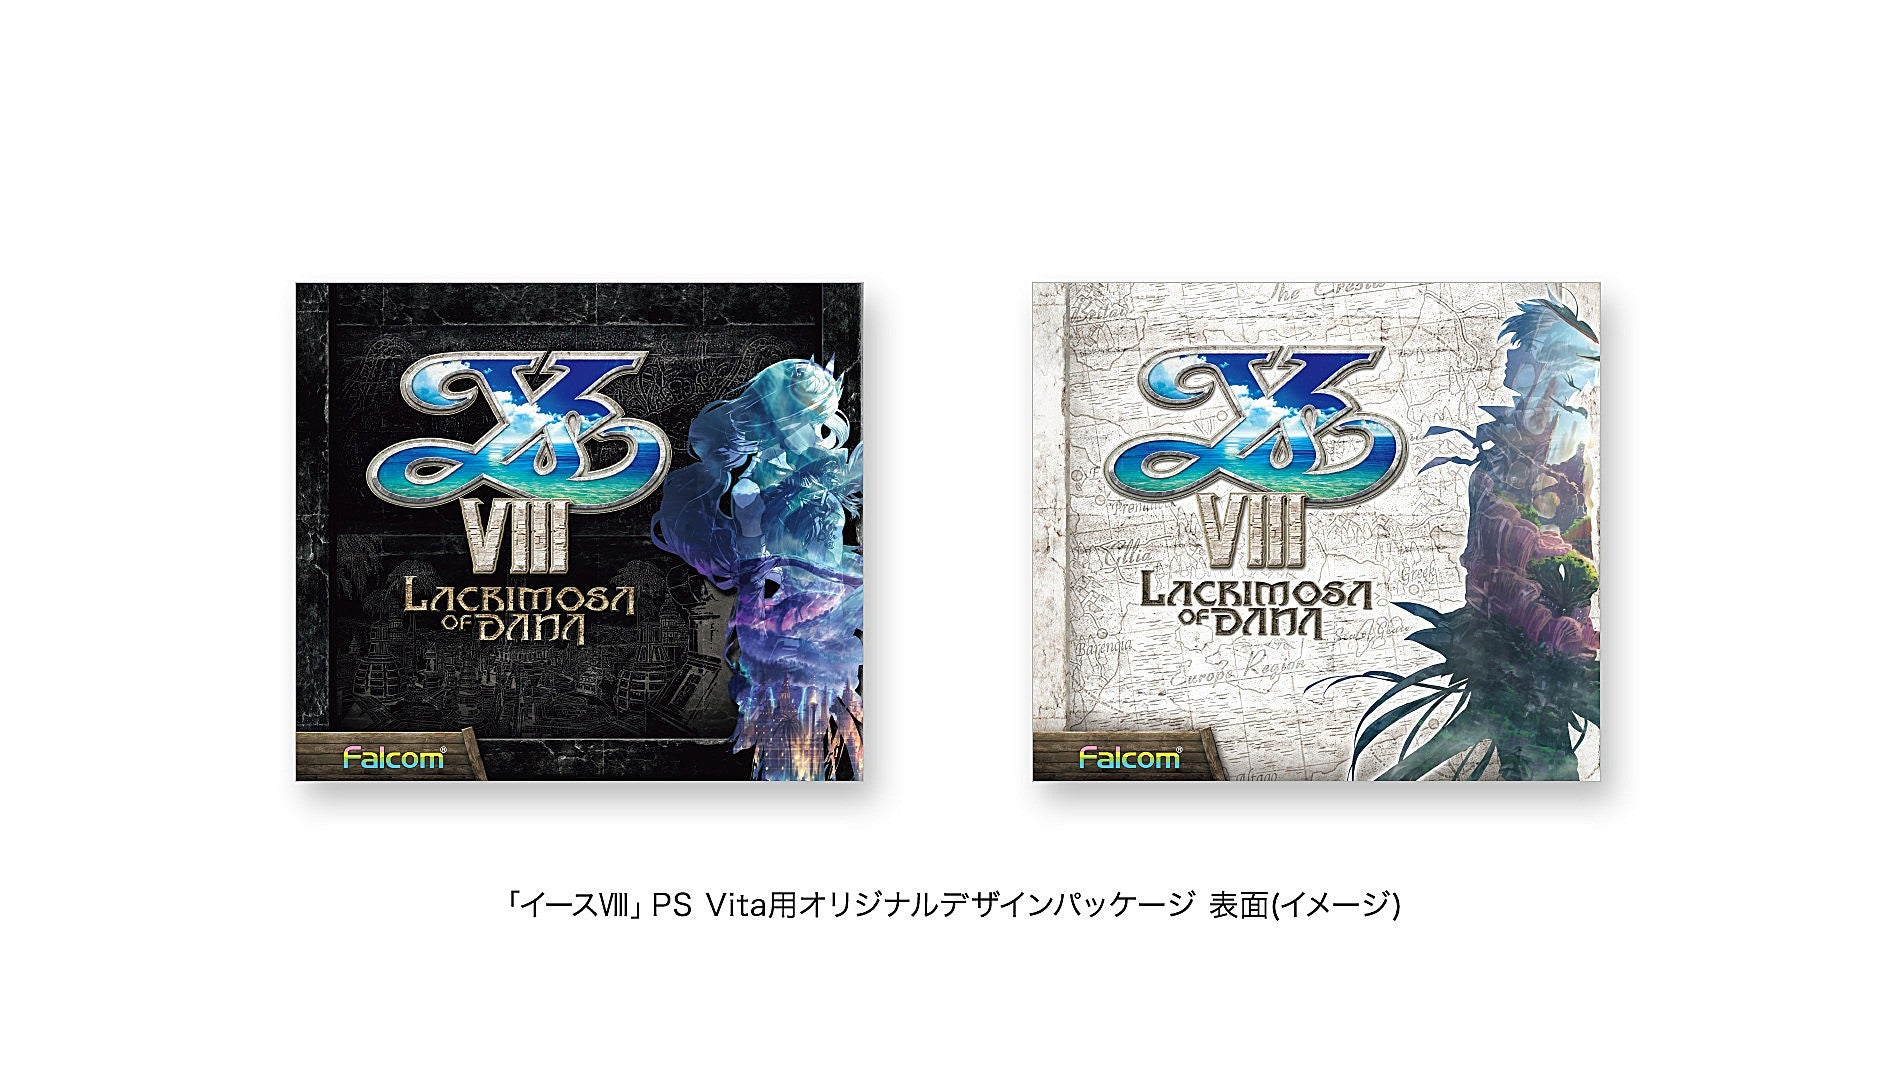 Image 2 for PlayStation Vita Wi-fi Model Ys VIII White Clelia Edition